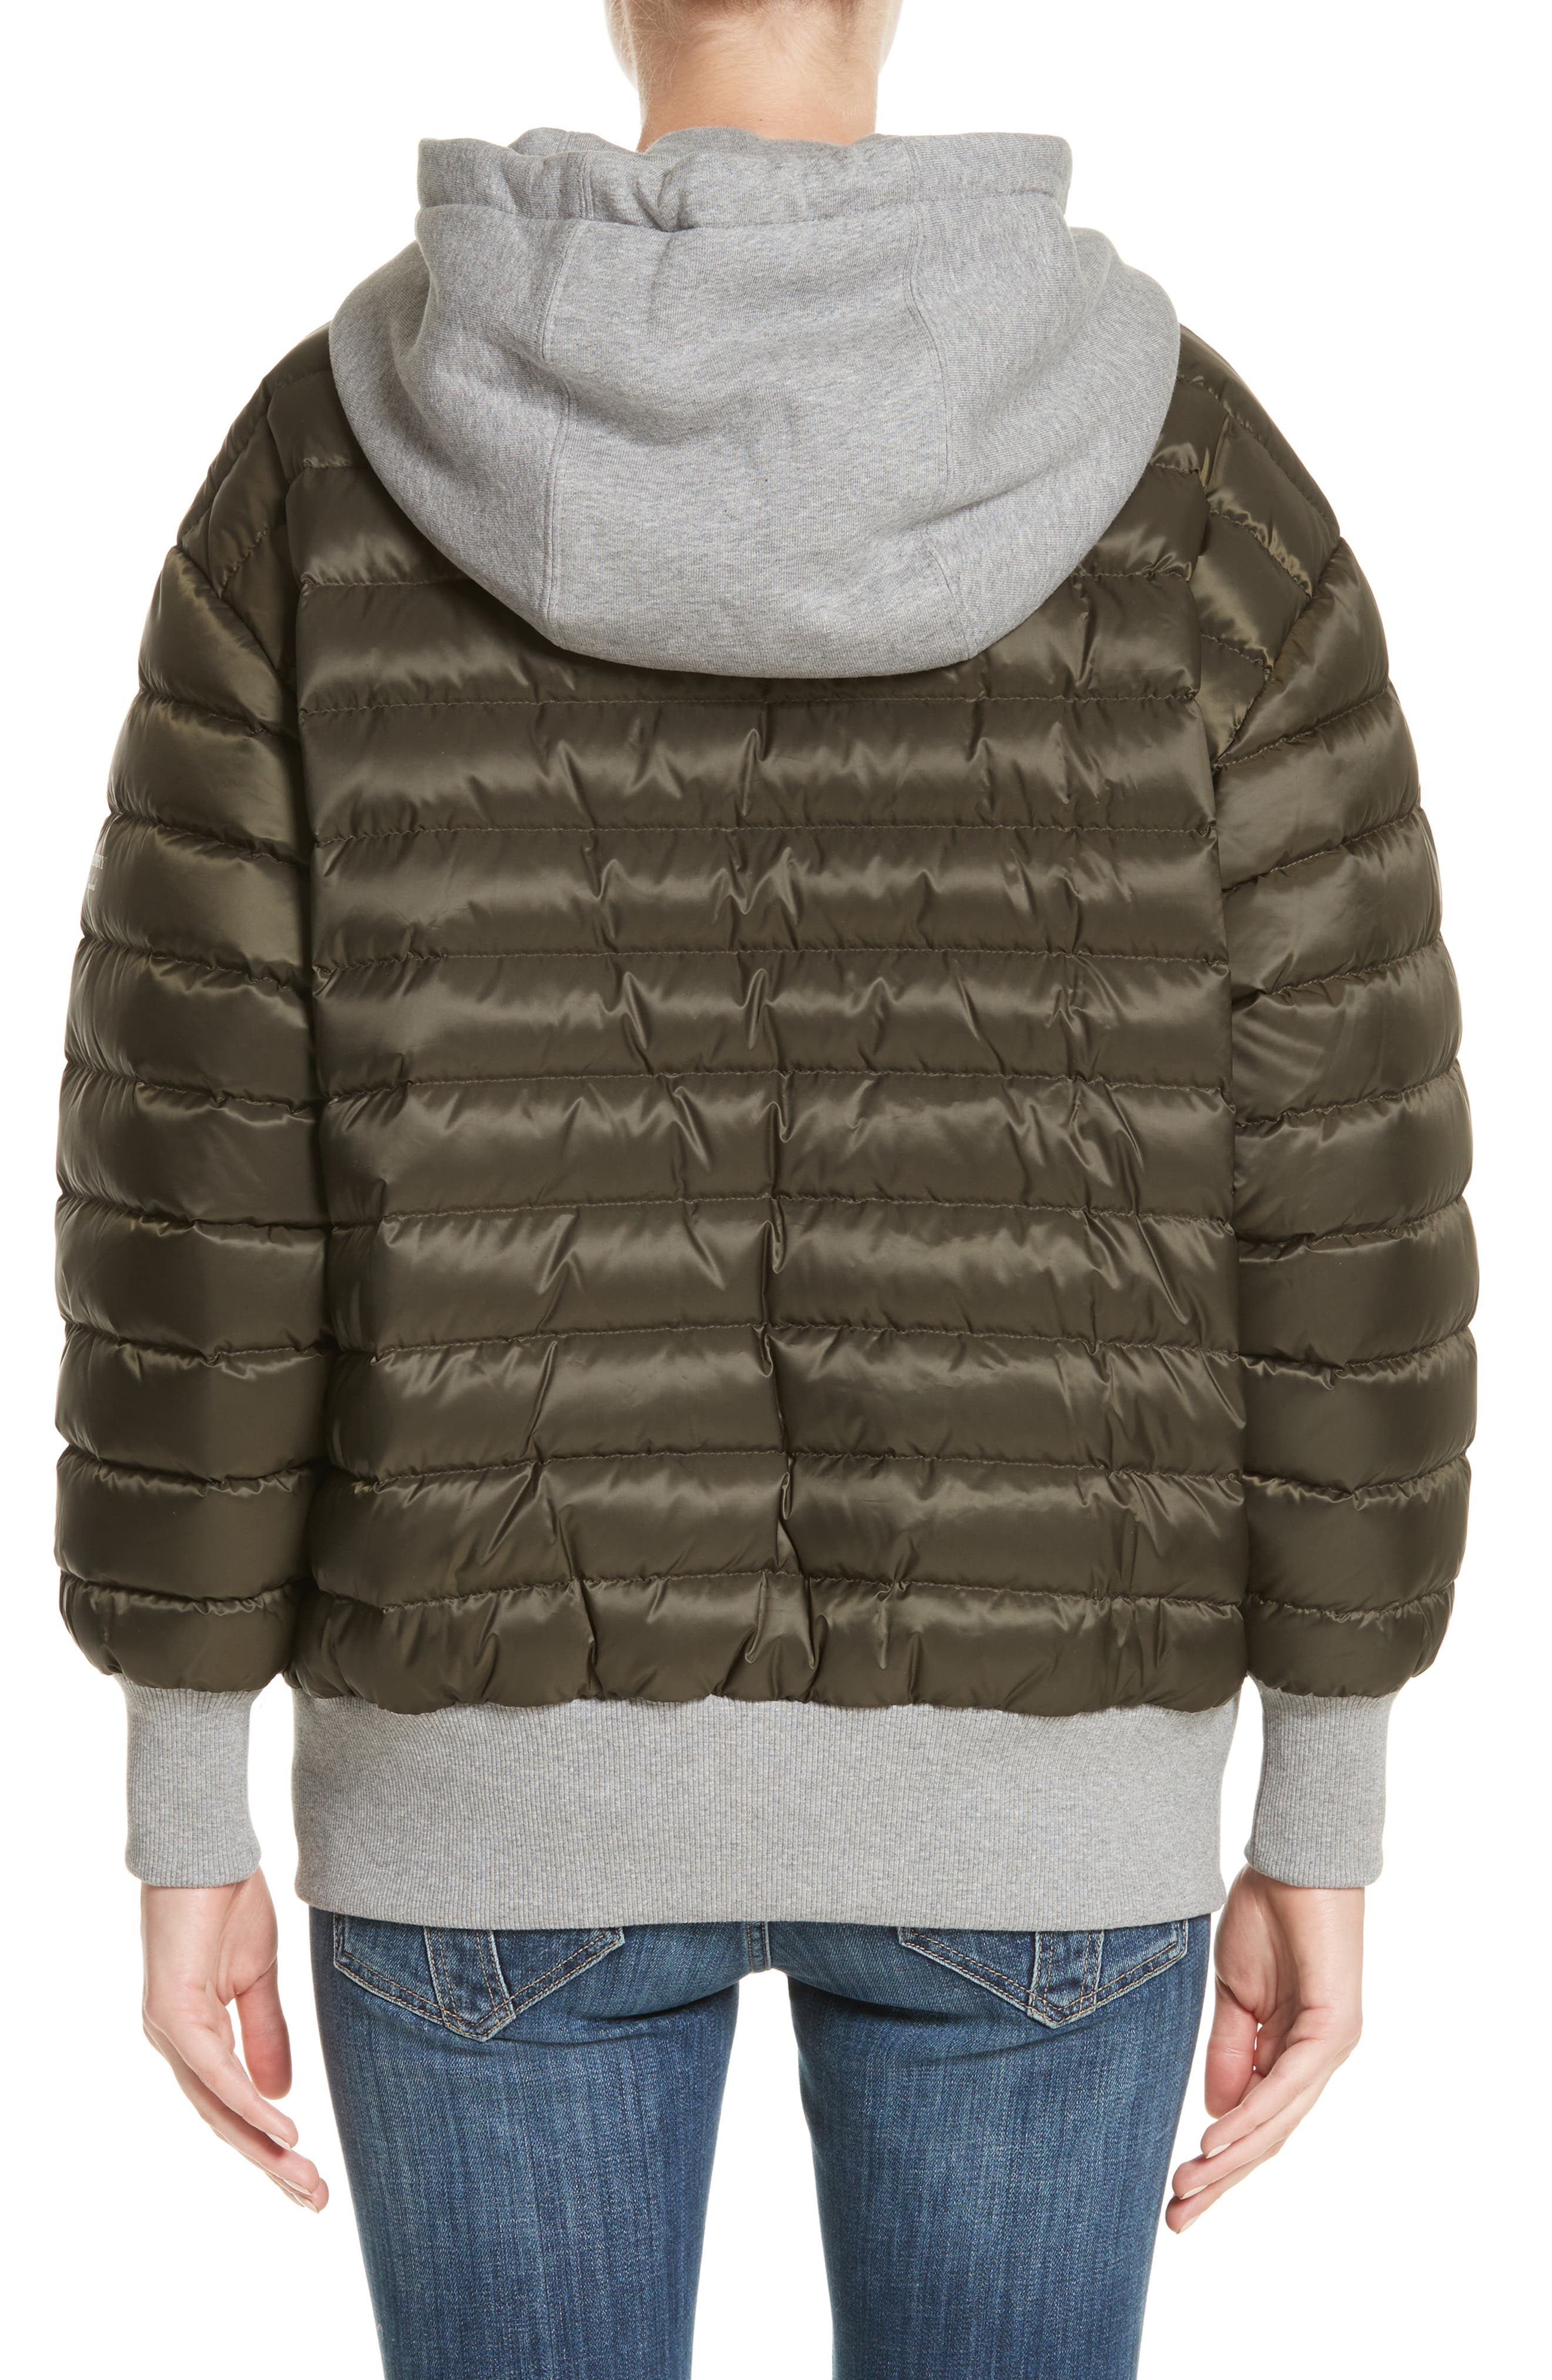 Langleigh Reversible Down Hooded Bomber Jacket,                             Alternate thumbnail 3, color,